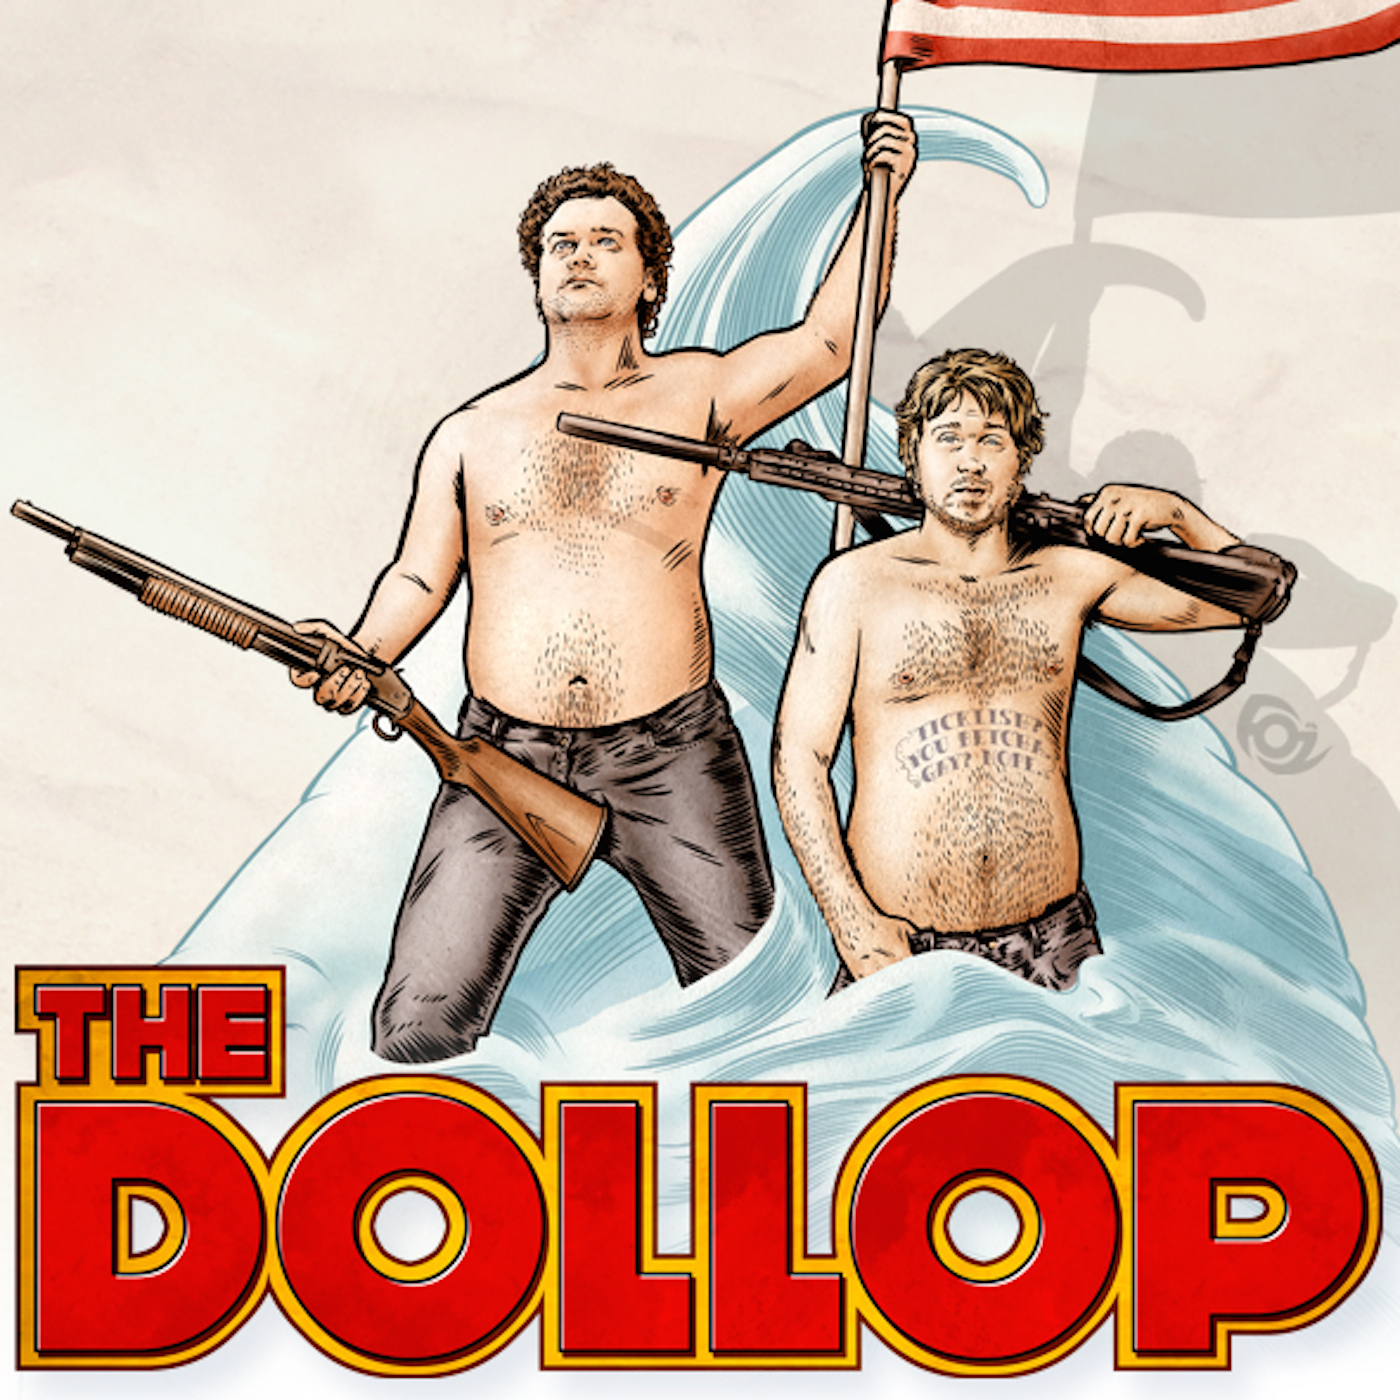 The Dollop with Dave Anthony and Gareth Reynolds logo